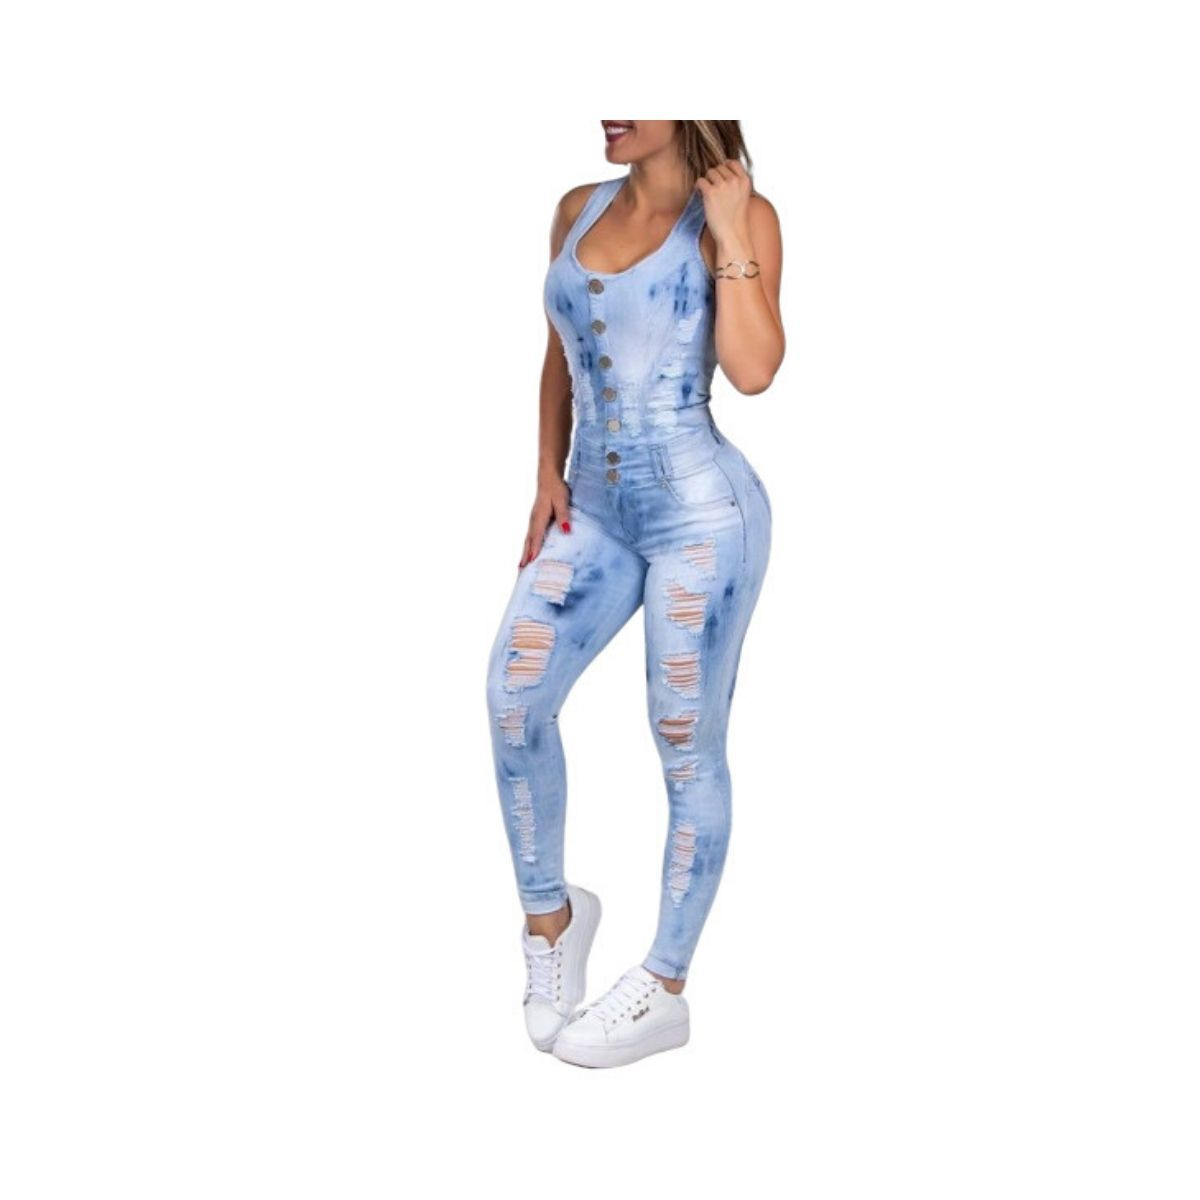 Macacao Pit Bull 33520 Jeans Destroyed TIE-DYE